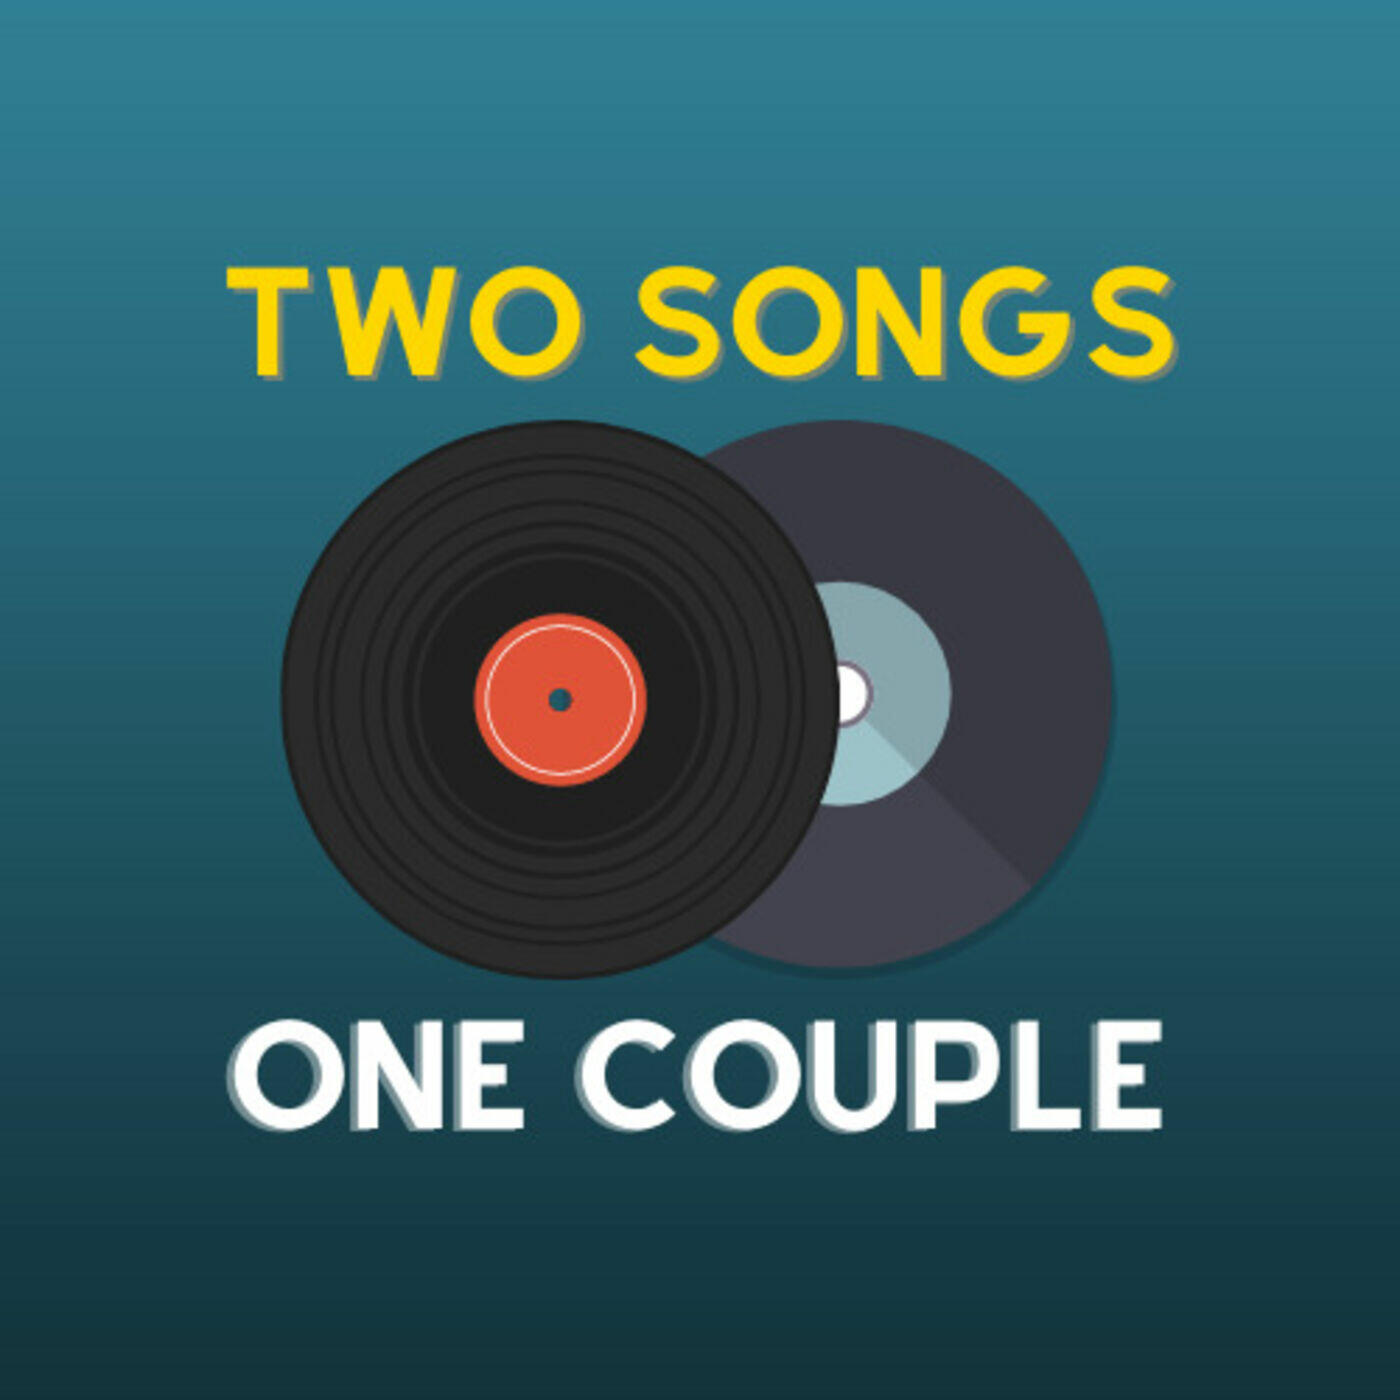 Two Songs One Couple